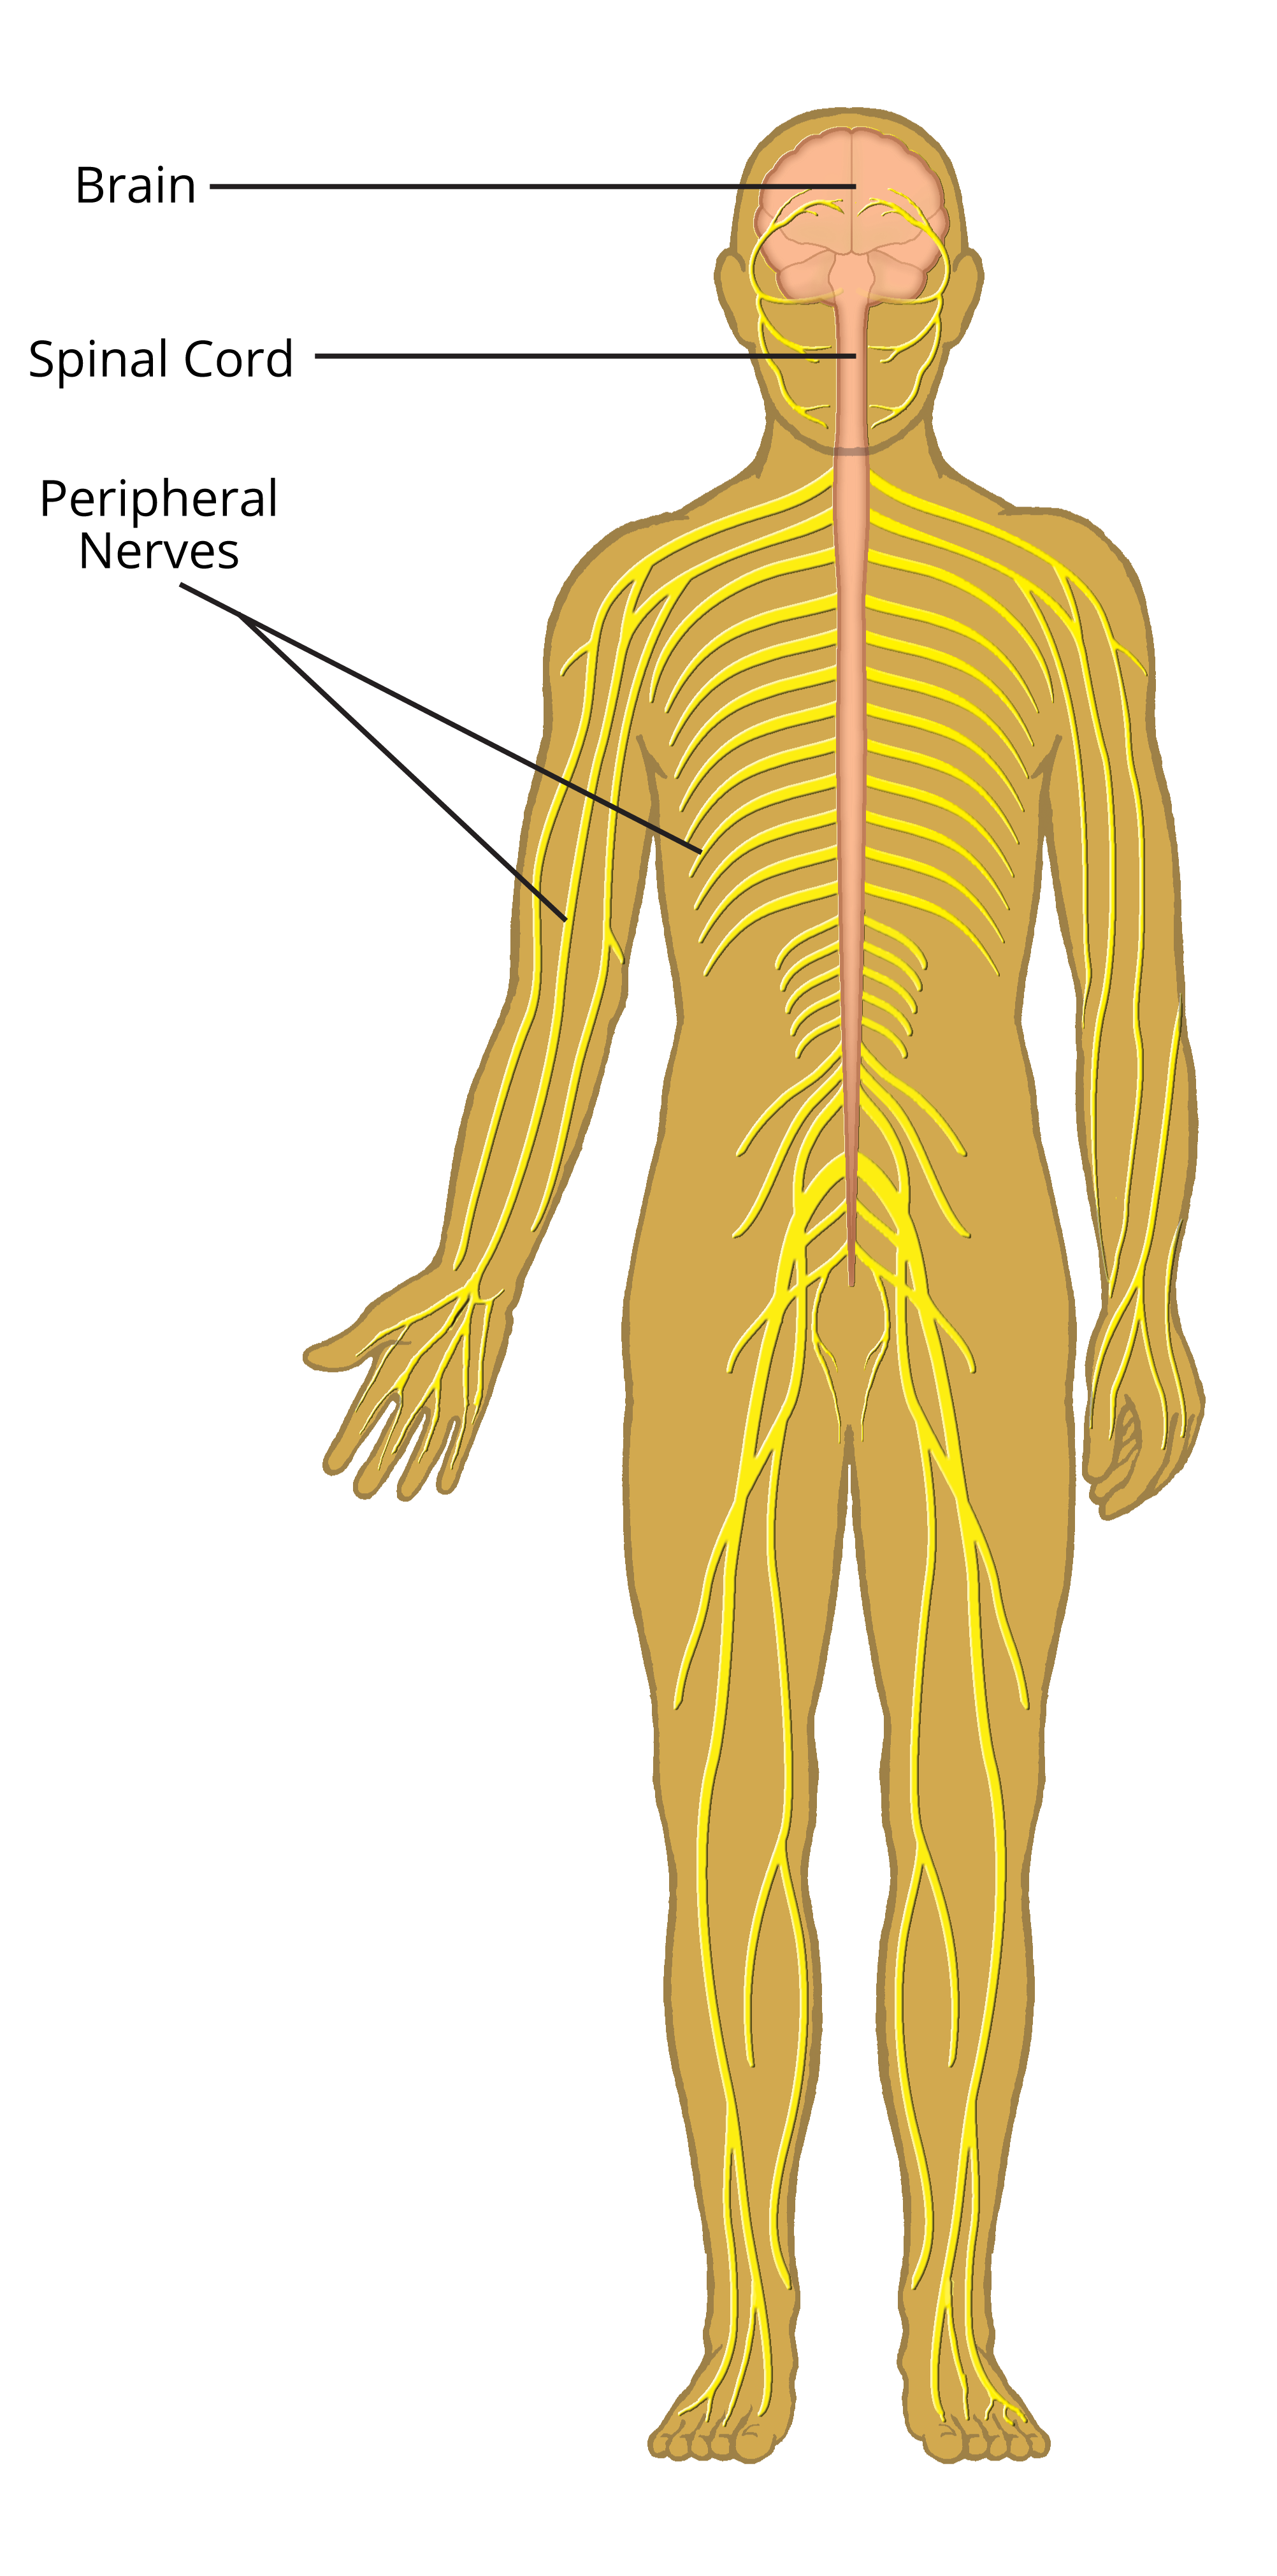 About the Nervous System | AxoGen, Inc. (AXGN)